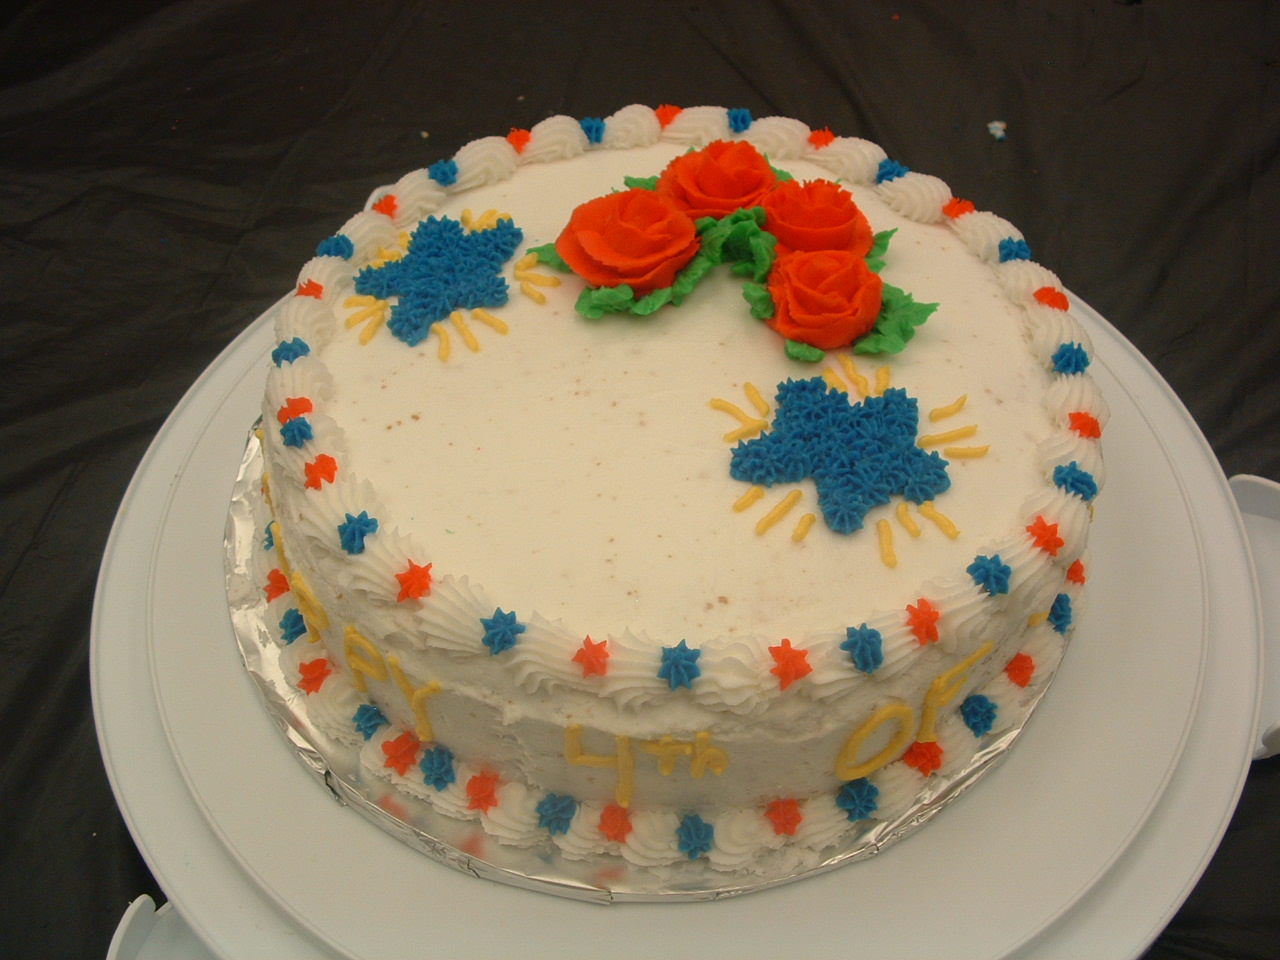 Cake Decorating by Sonia: June Final Cake - Decorating ...